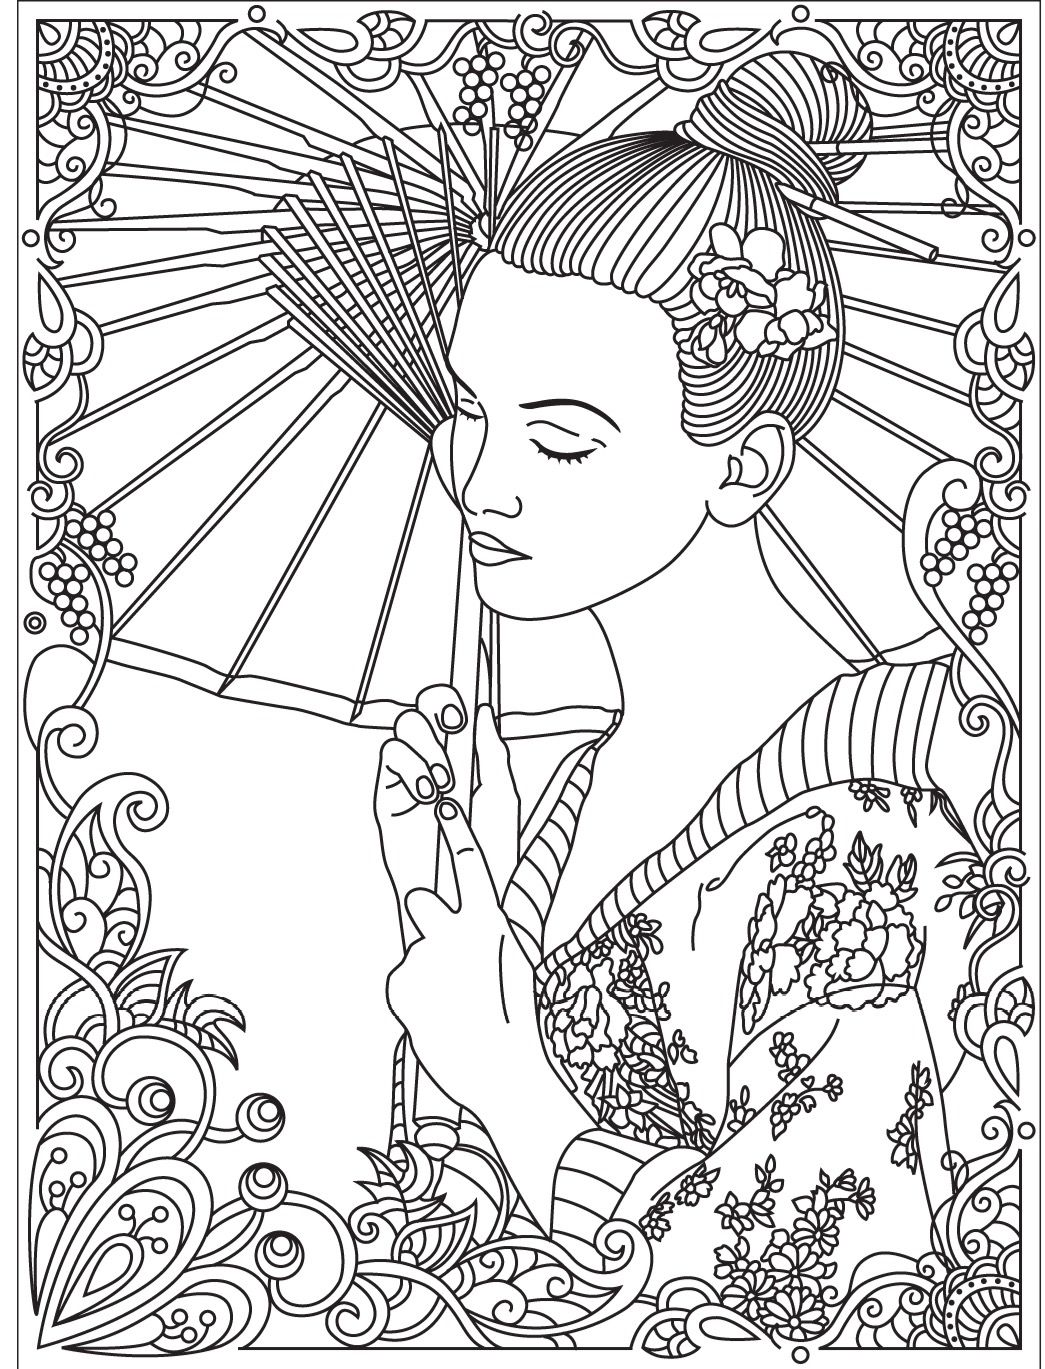 Japan Geisha Colorish Coloring Book For Adults Mandala Relax By Goodsofttech Coloring Books Detailed Coloring Pages Coloring Pages